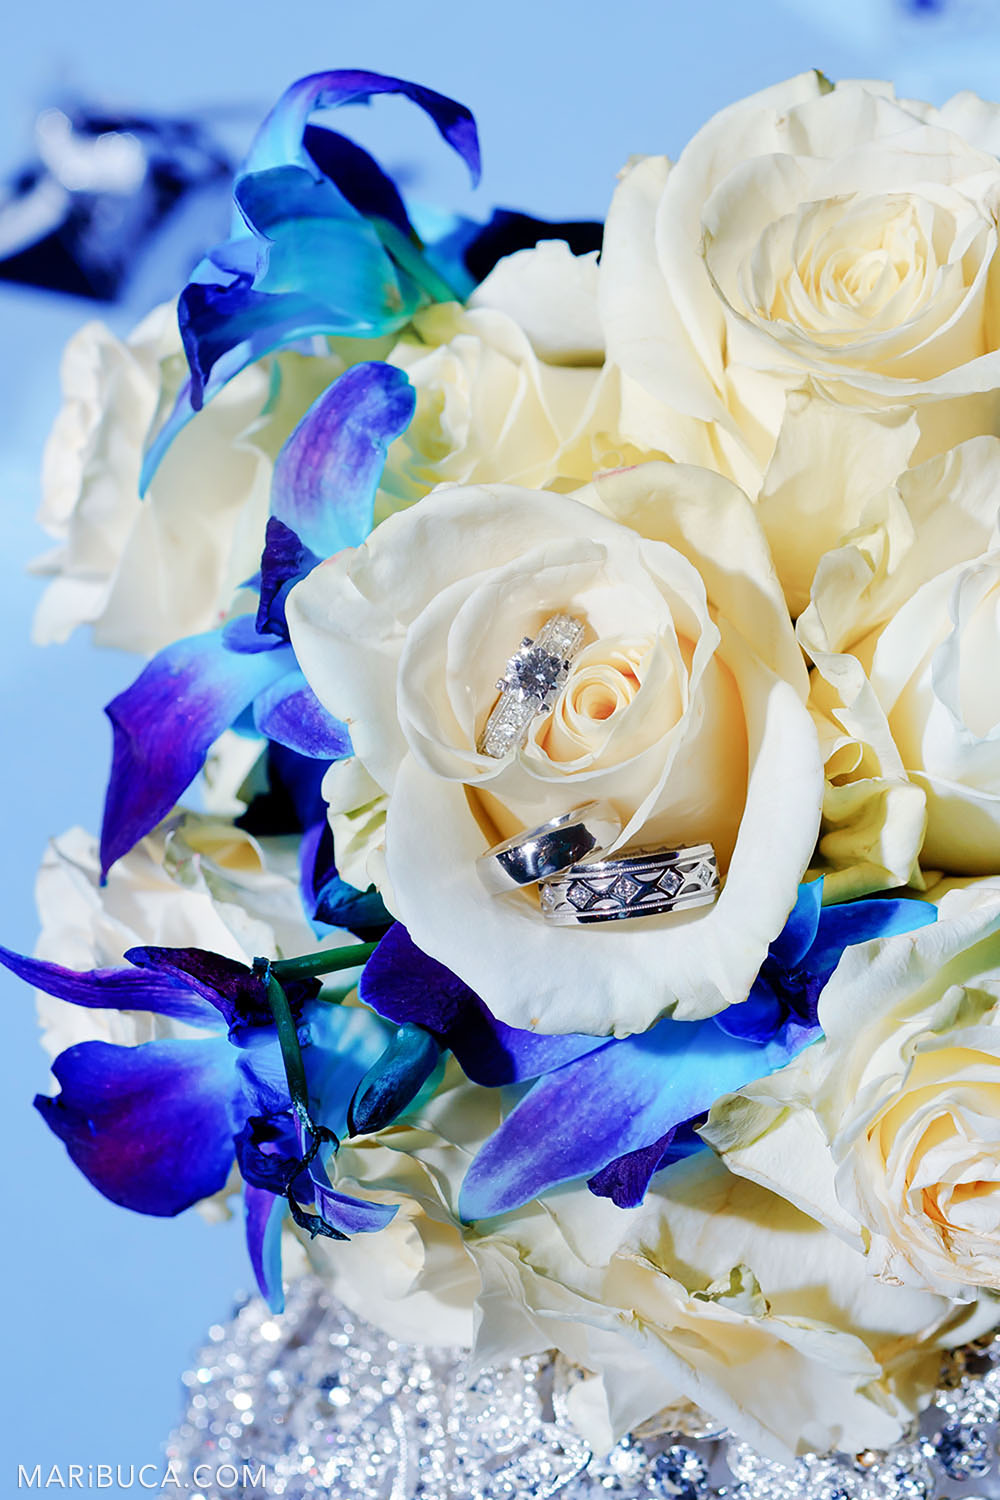 Wedding rings and a pre-wedding ring lie in the petals of white roses surrounded by blue flowers and a light blue background.